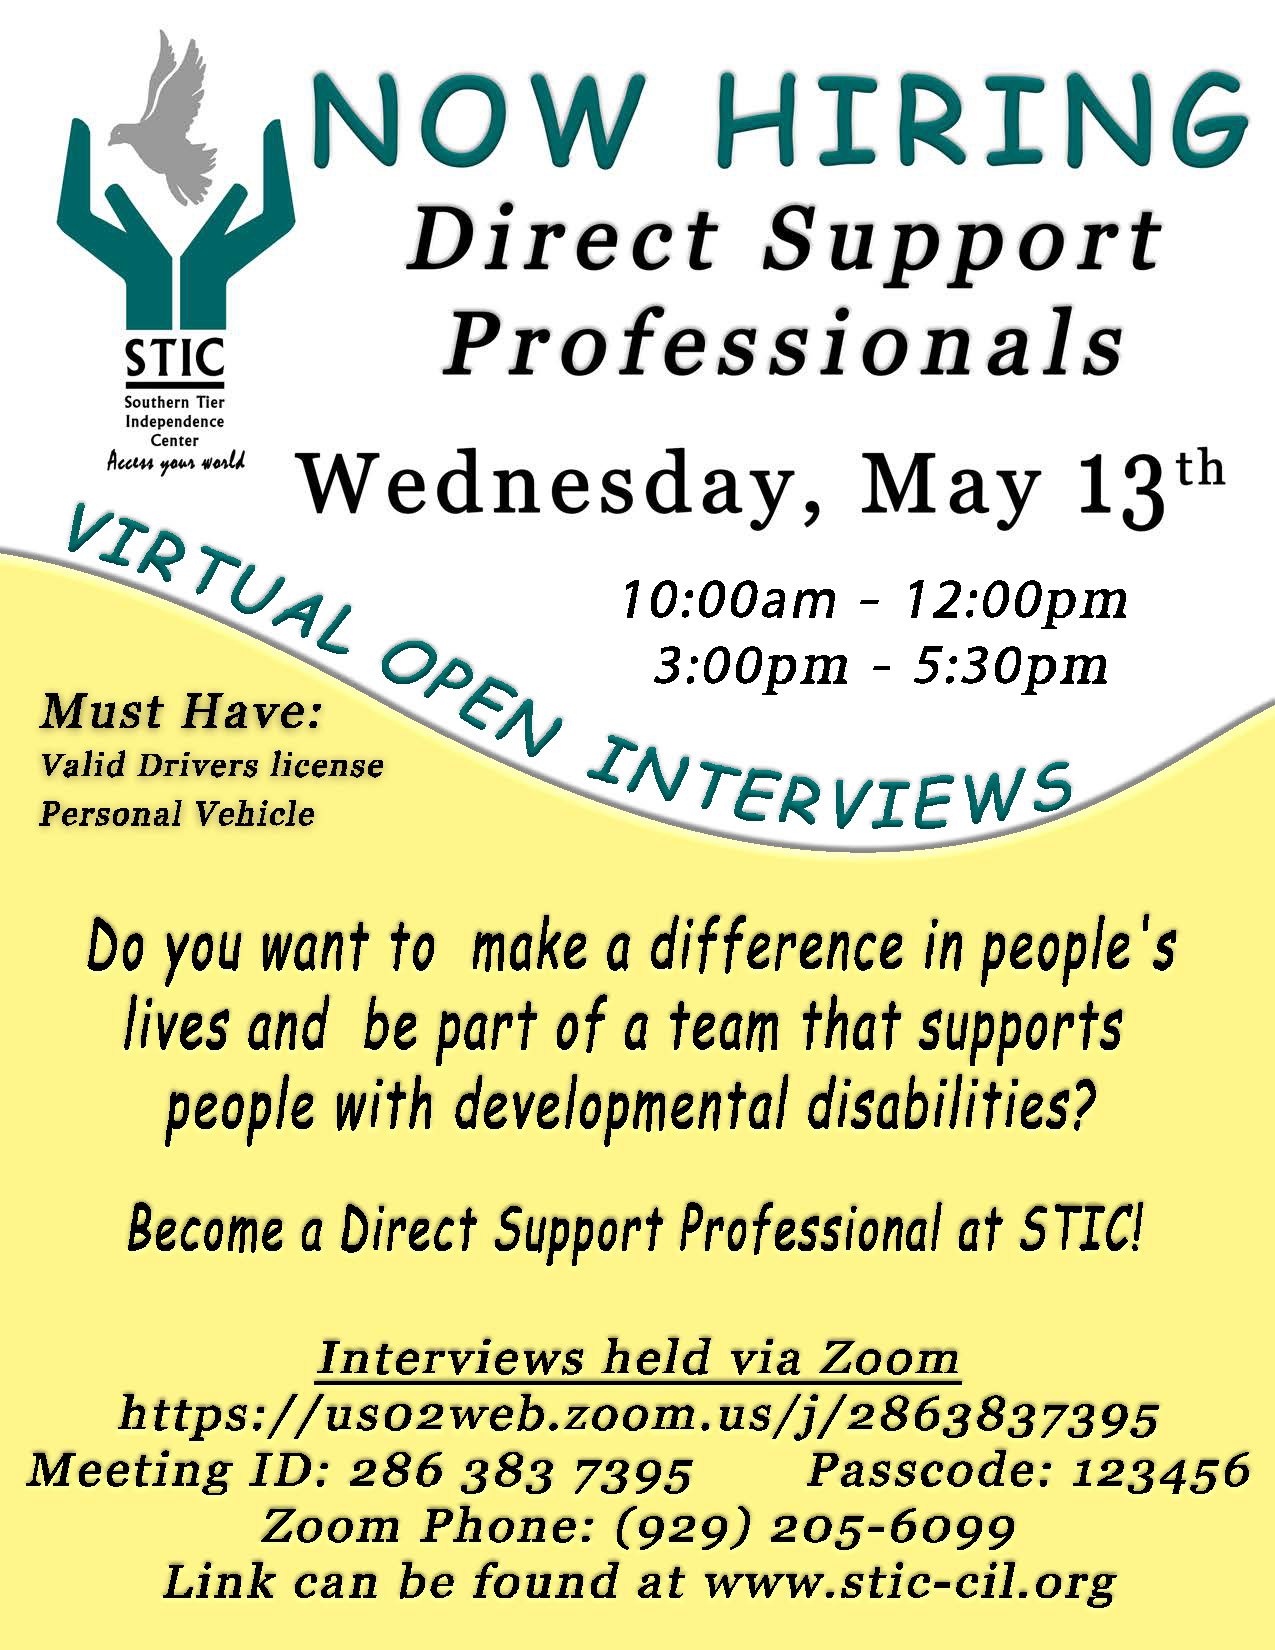 Poster showing there is a Virtual Open Interview Event happening on May 13th 10am to 12pm and 3pm to 5:30pm. Click the poster to open the zoom link.